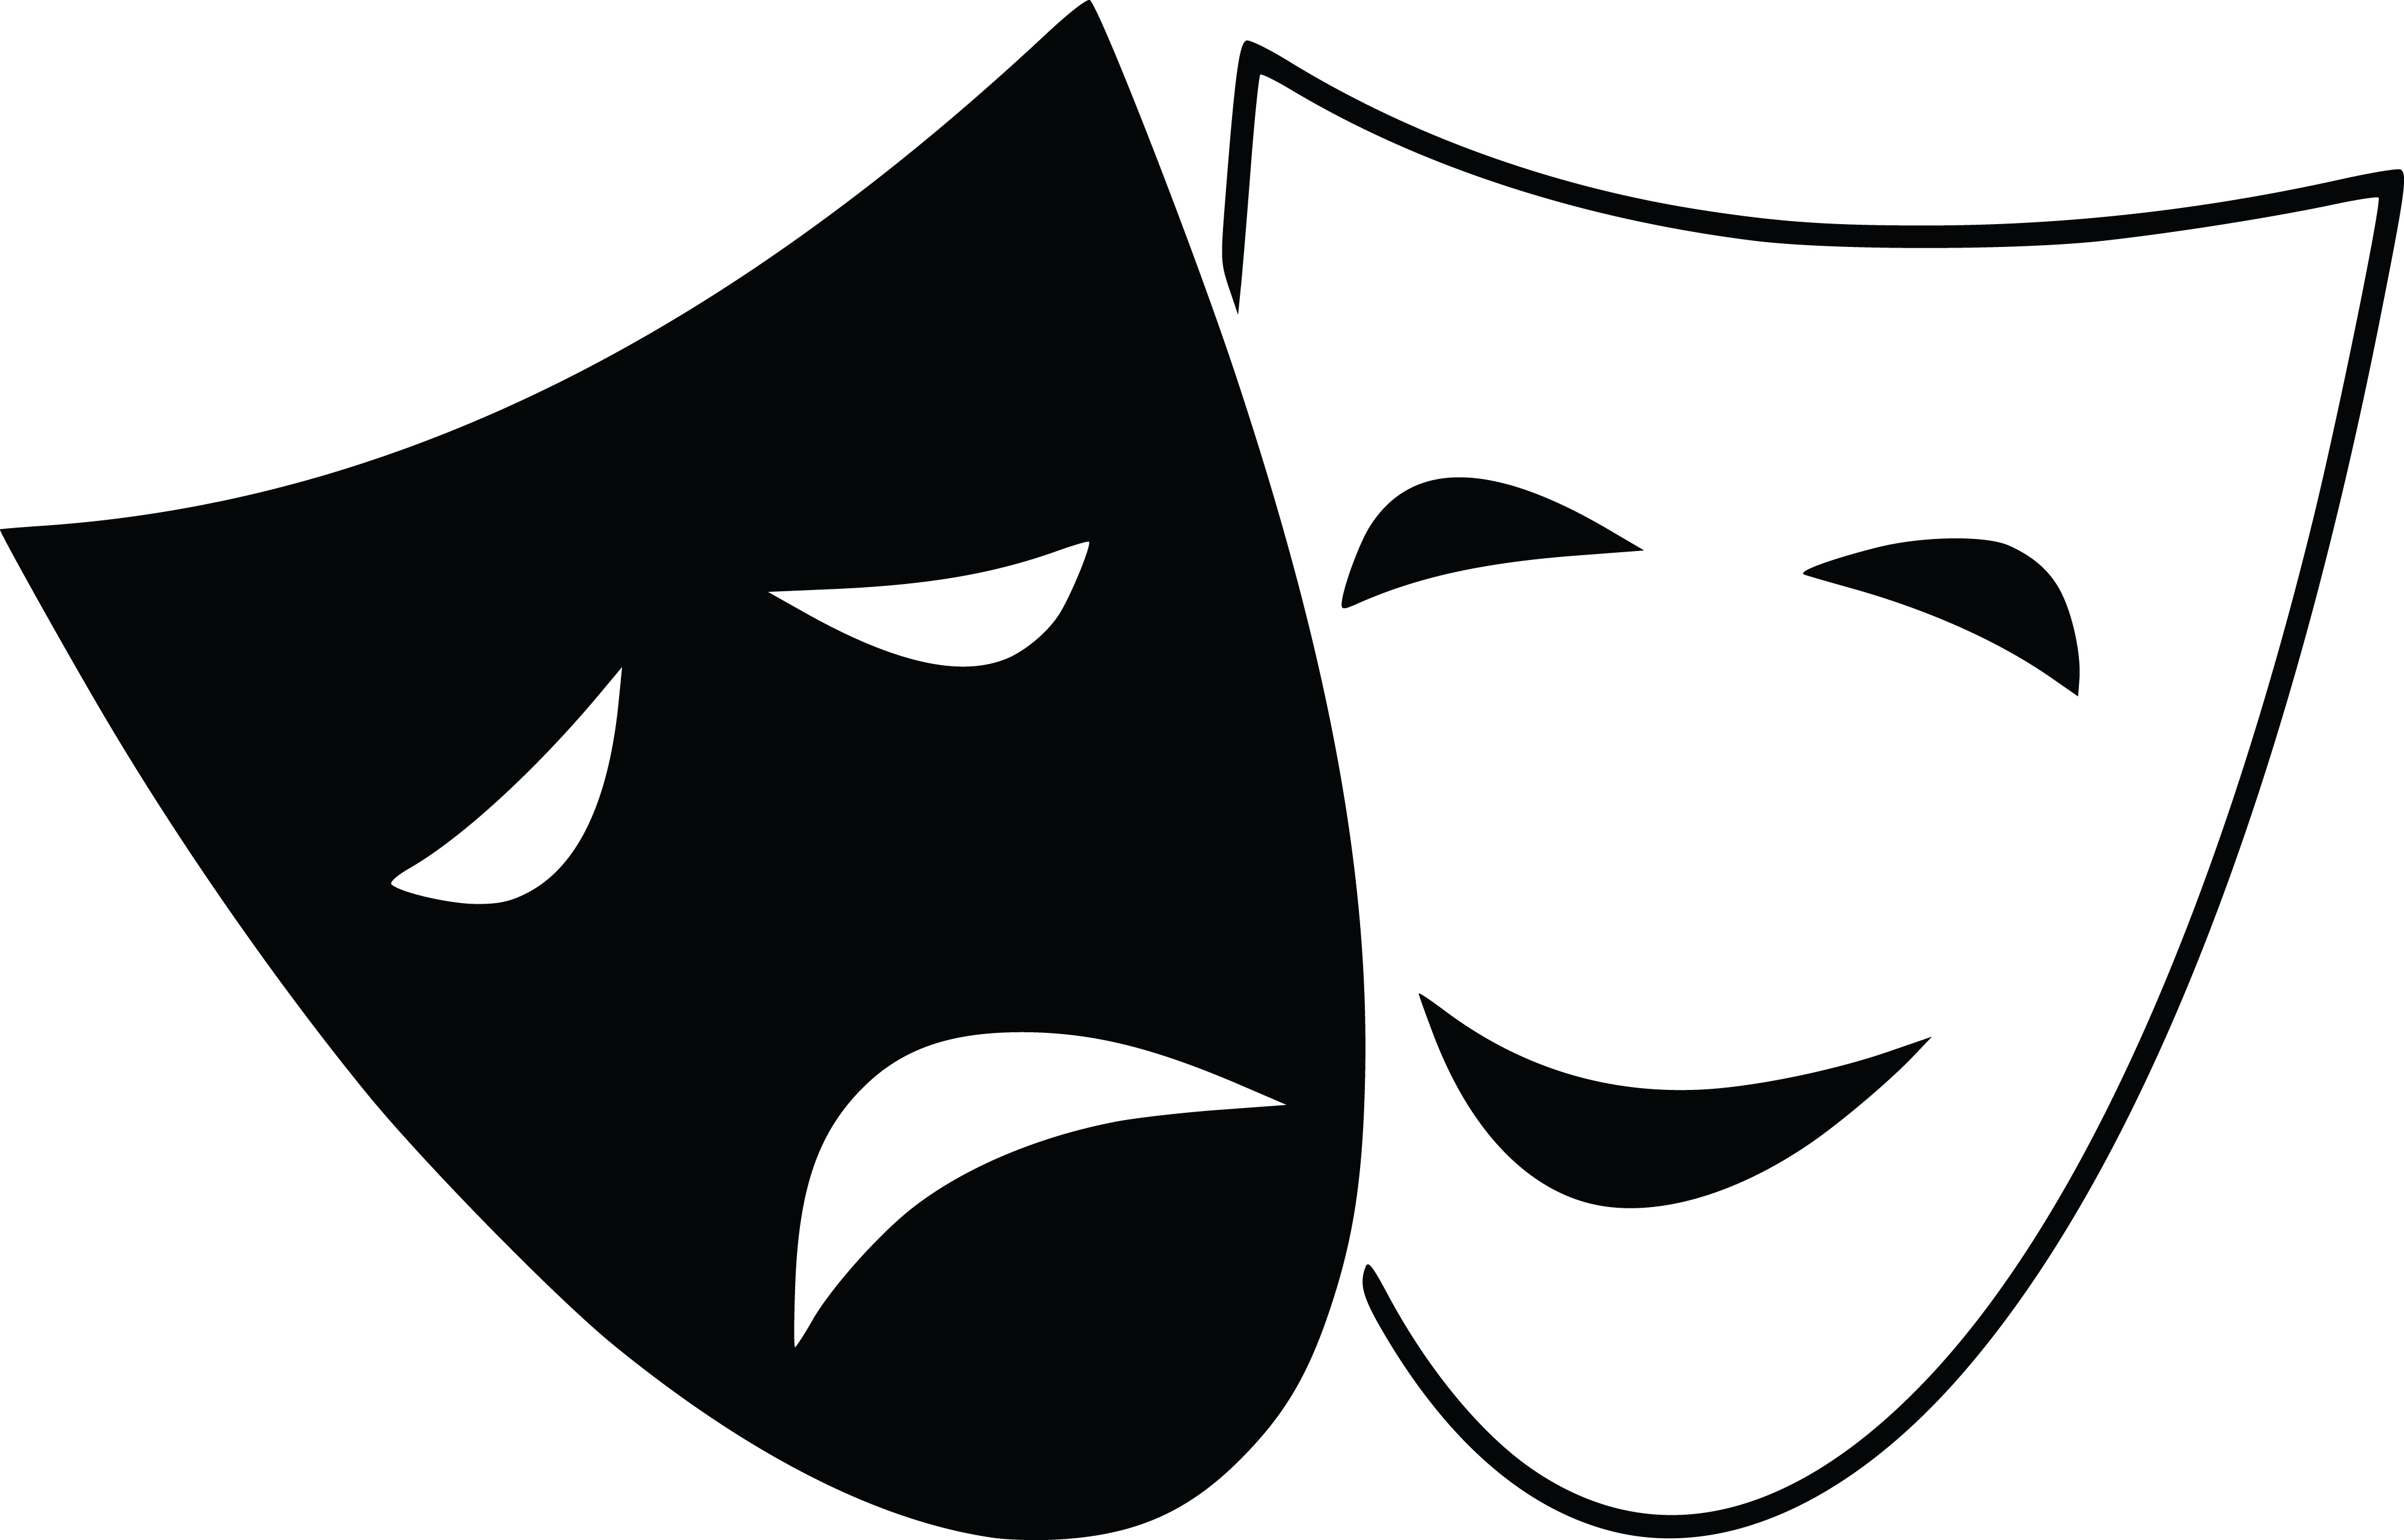 Drama clipart. Mask silhouette at getdrawings